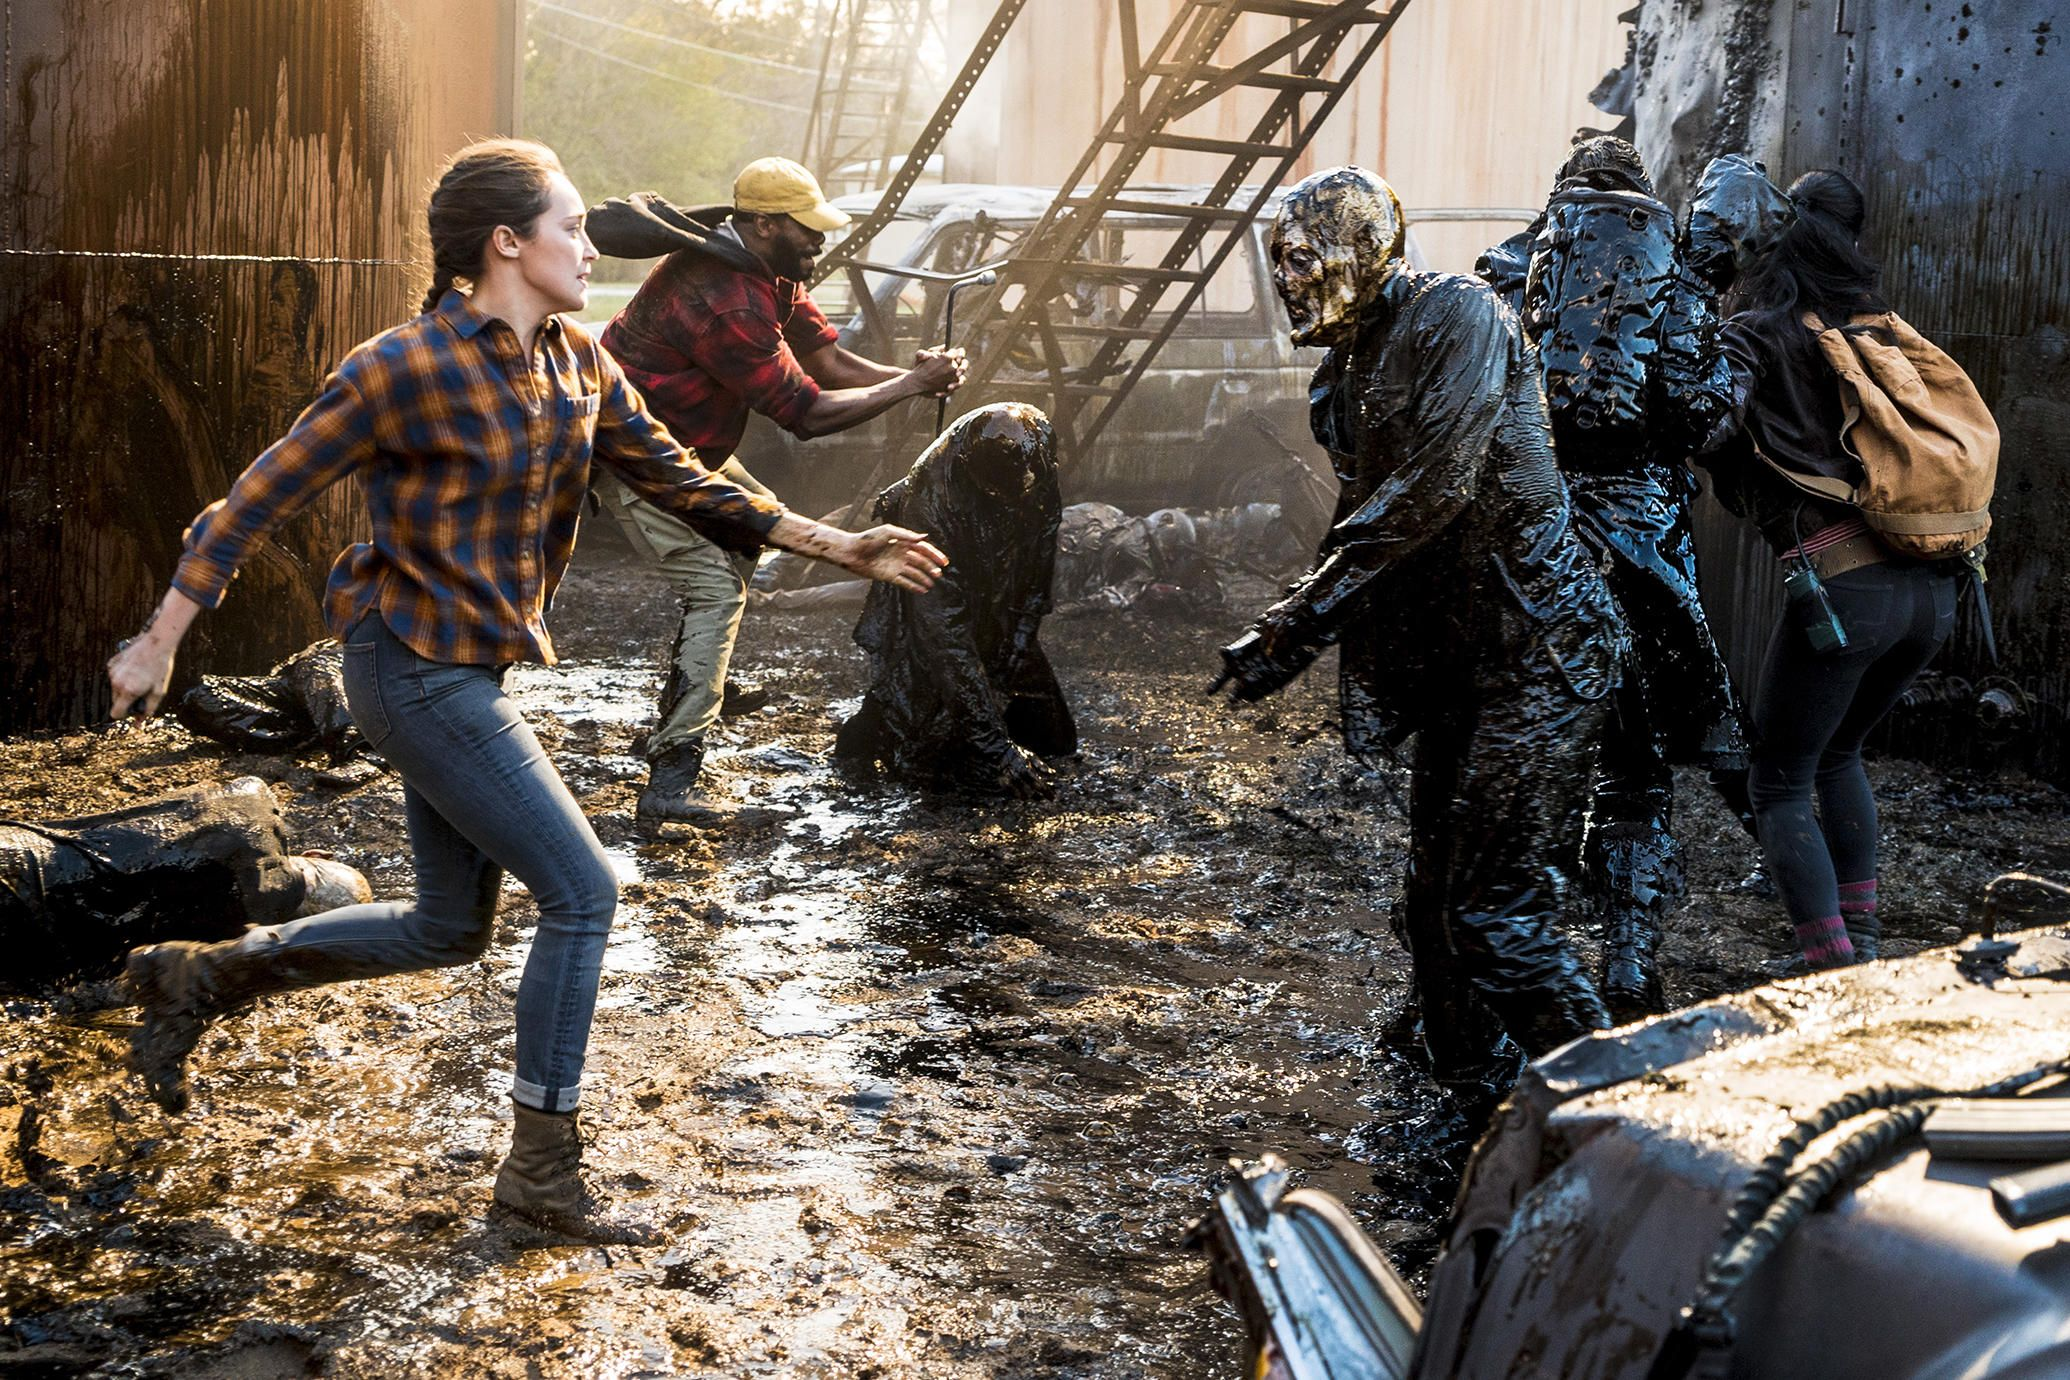 Fear The Walking Dead Season 4 First Look Photos Of Alicia Strand And Luciana Fear The Walking Dead Walking Dead Season 4 Fear The Walking